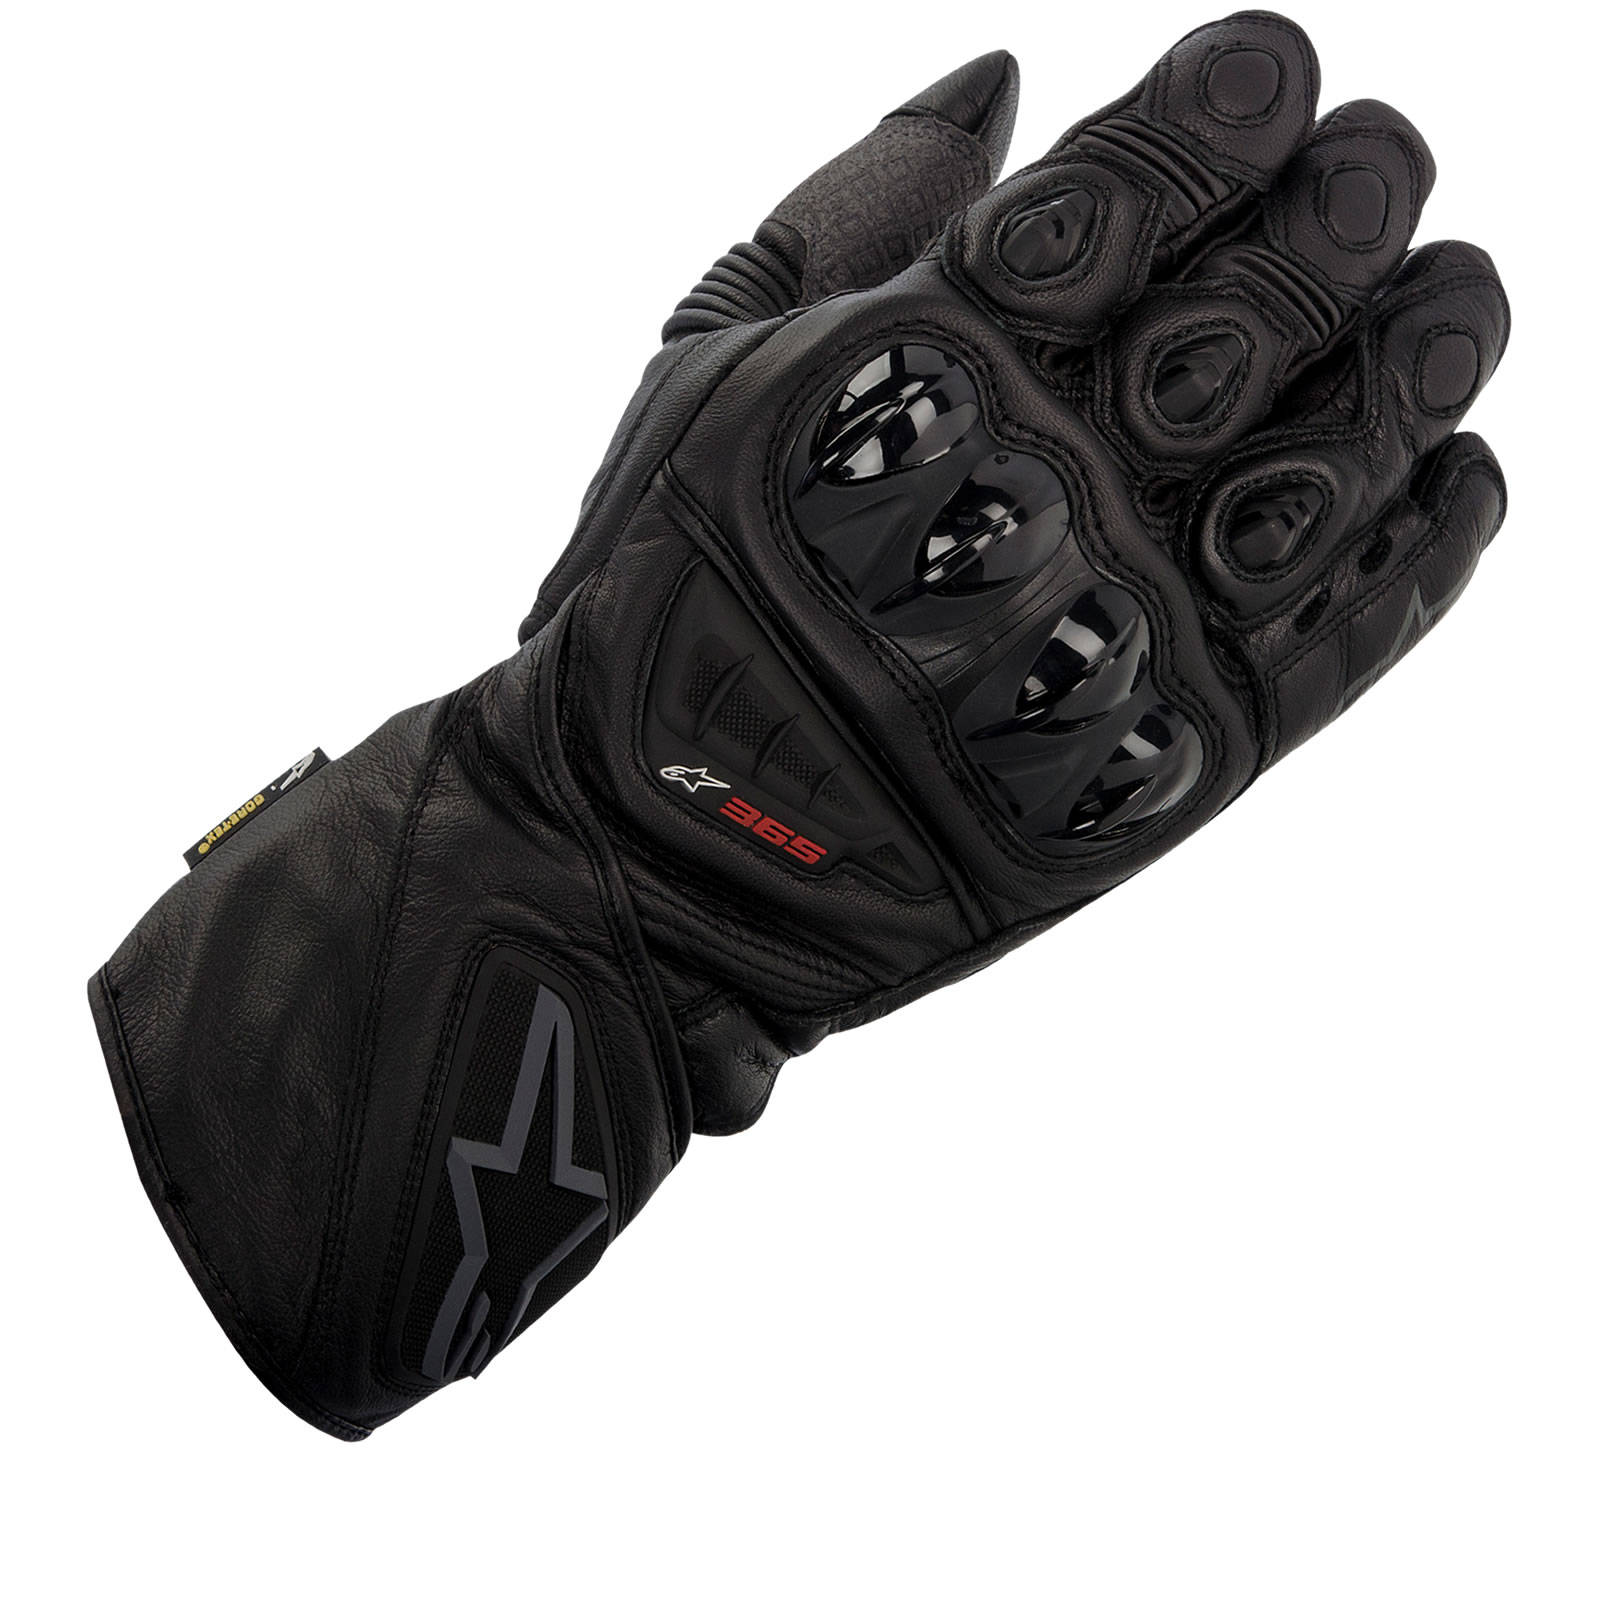 Xtrafit motorcycle gloves - Alpinestars 365 X Trafit Gore Tex Leather Motorcycle Gloves